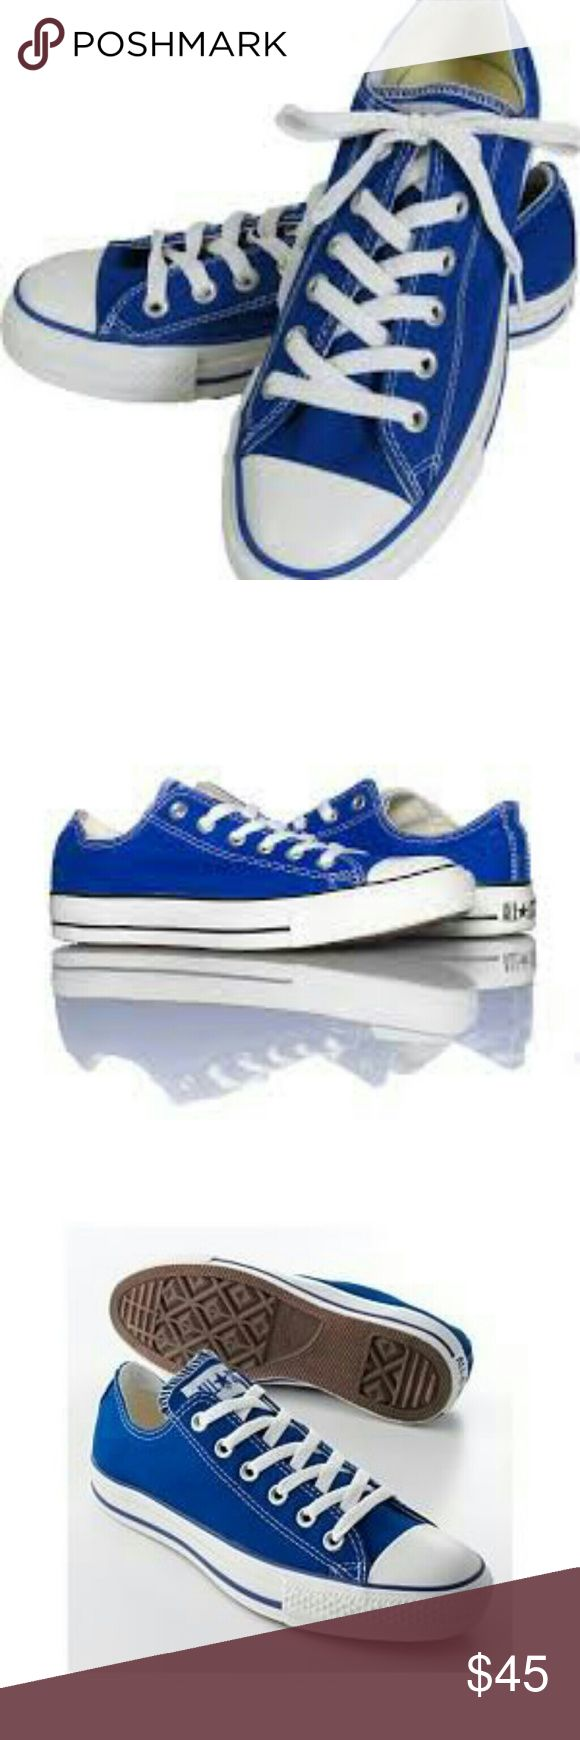 Womens royal blue converse Womens royal blue converse Converse Shoes Sneakers